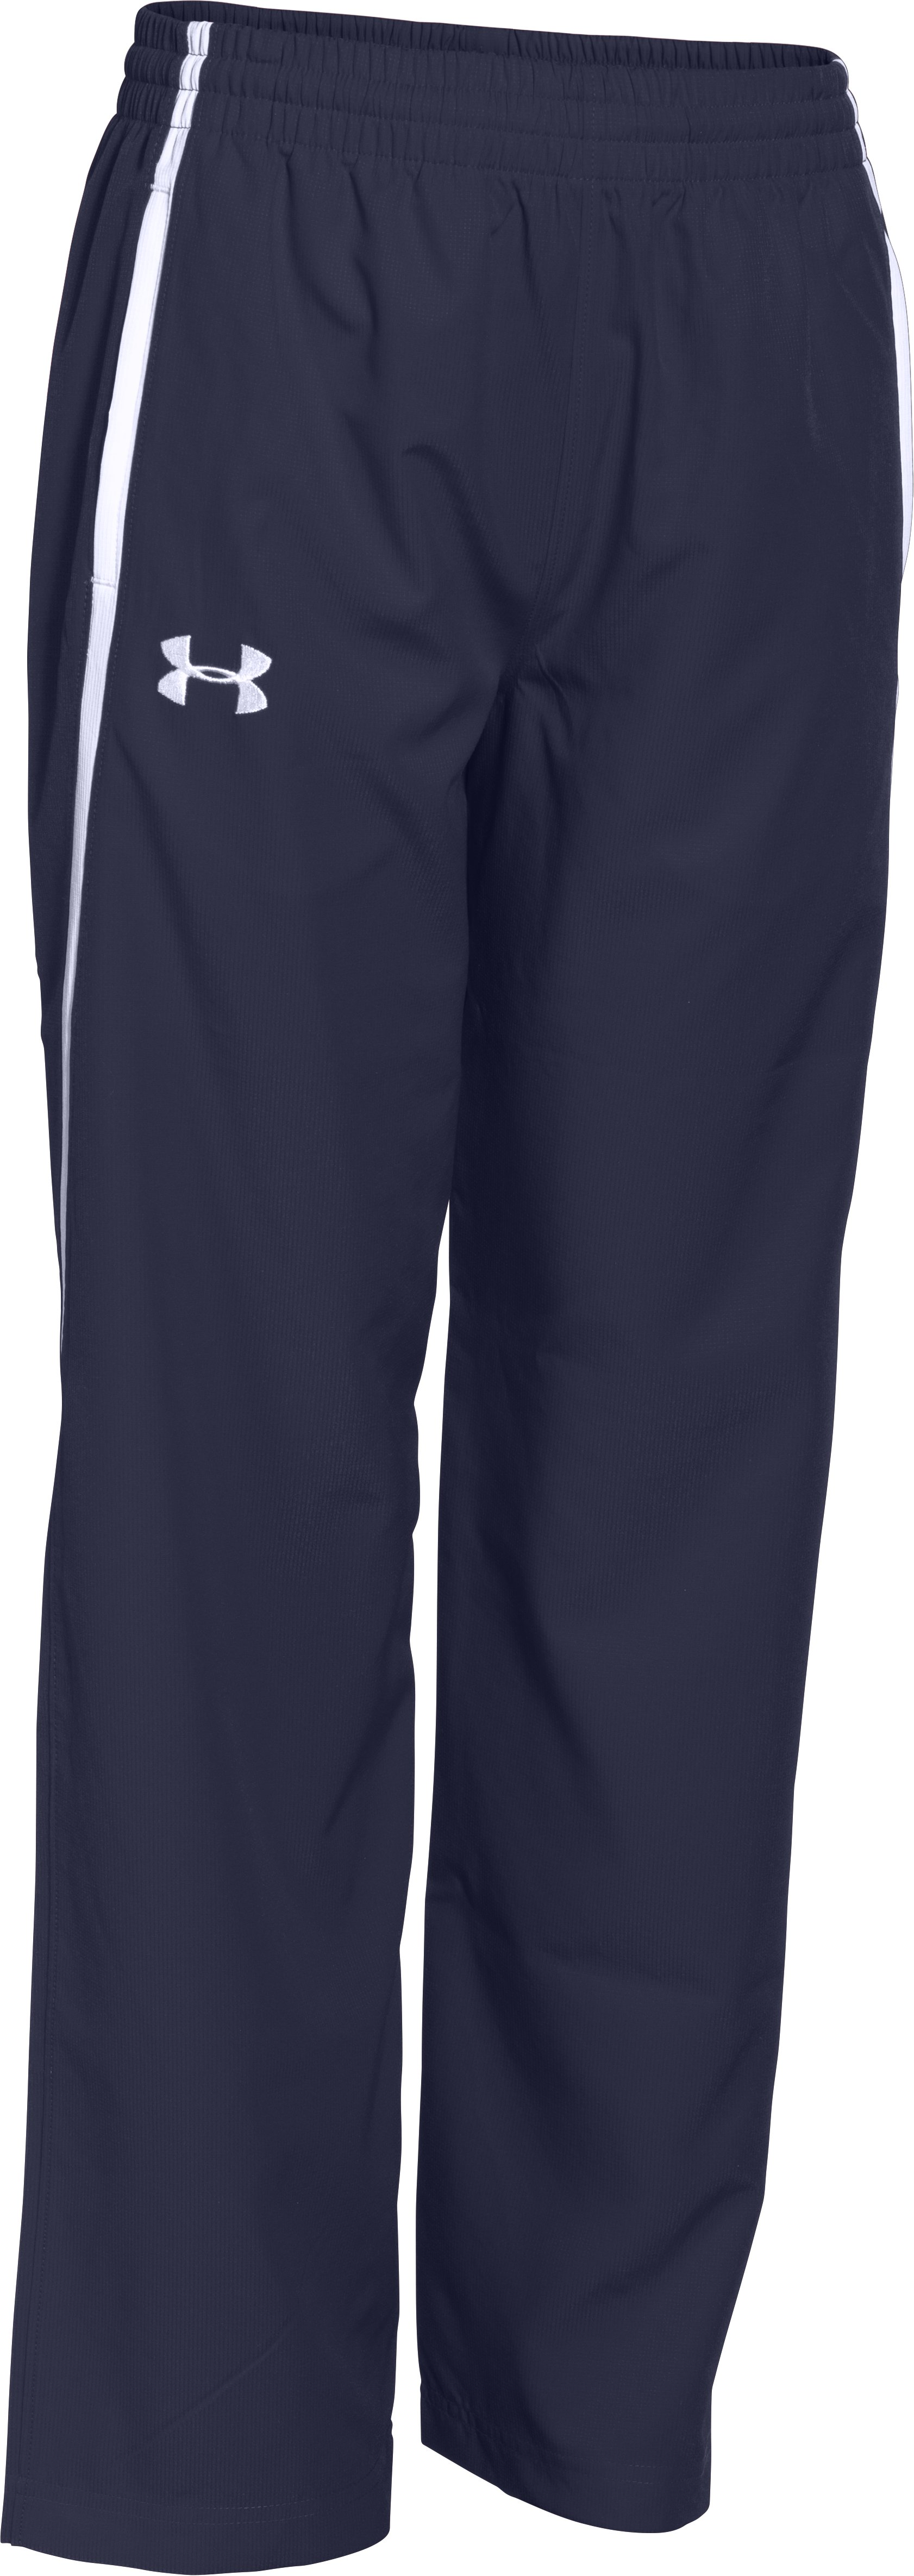 Boys' UA Essential Warm-Up Pants, Midnight Navy